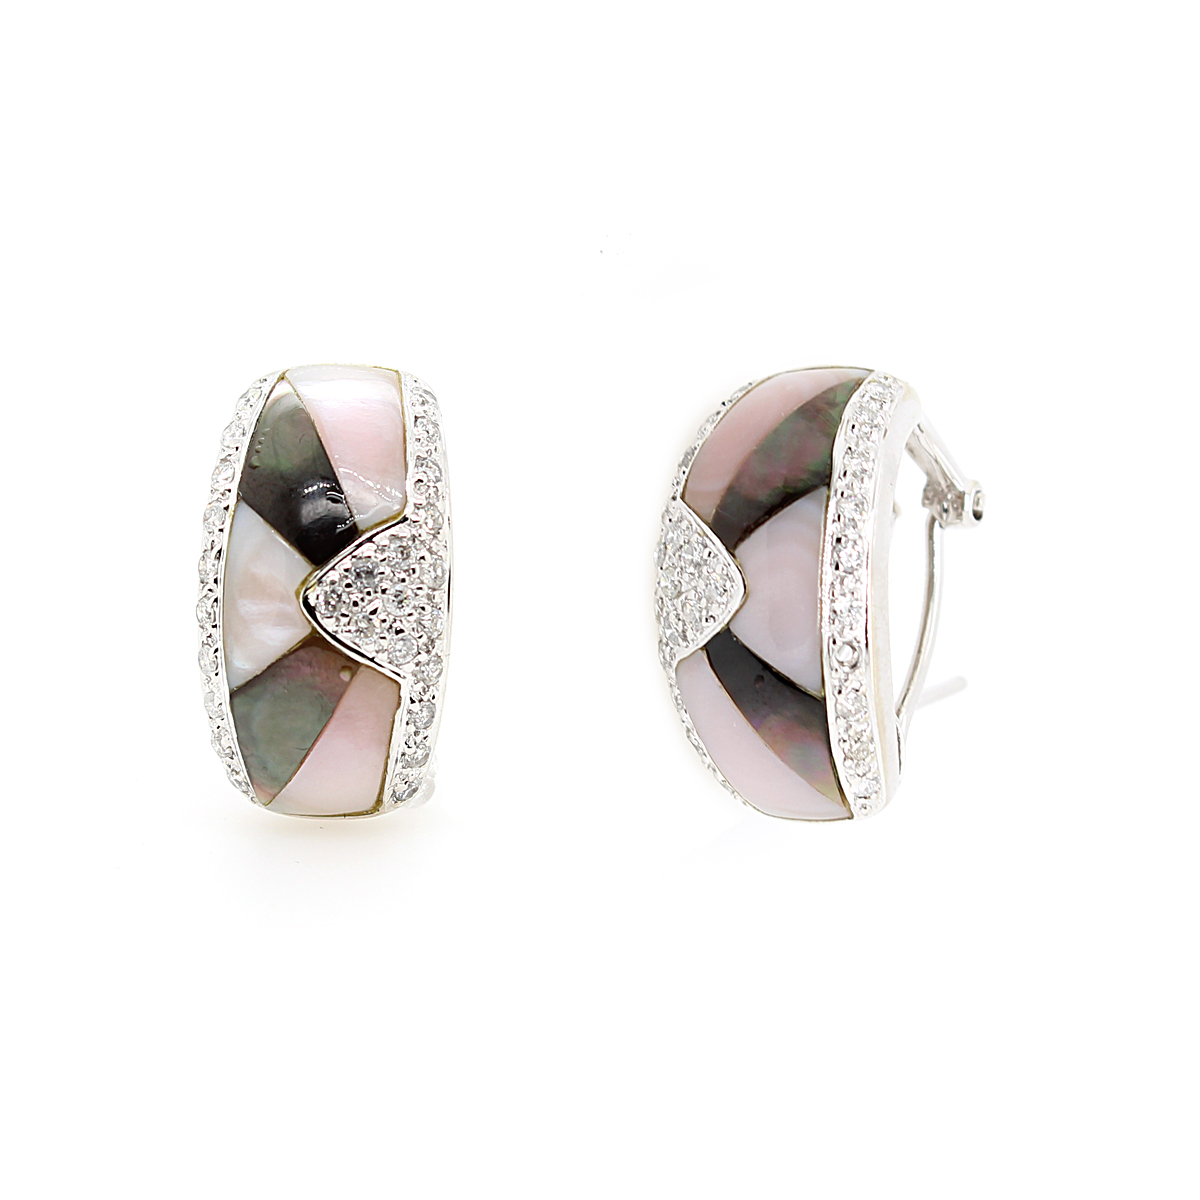 Vintage 14 Karat White Gold Pink and Black Mother of Pearl Earrings